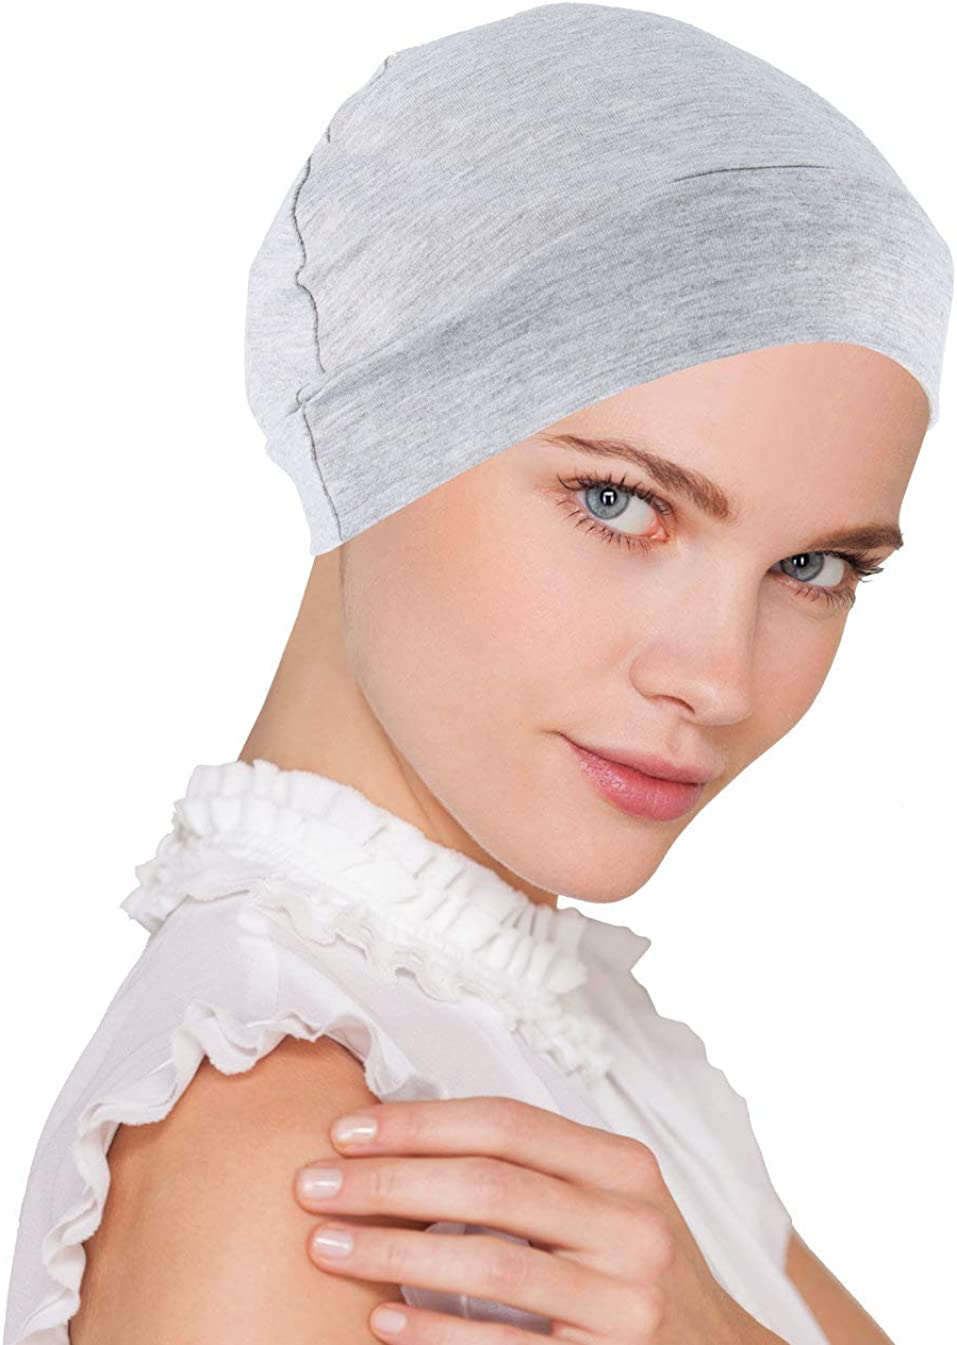 hair loss hat chemo hat chemo headwear Beanie for women chemotherapy patient